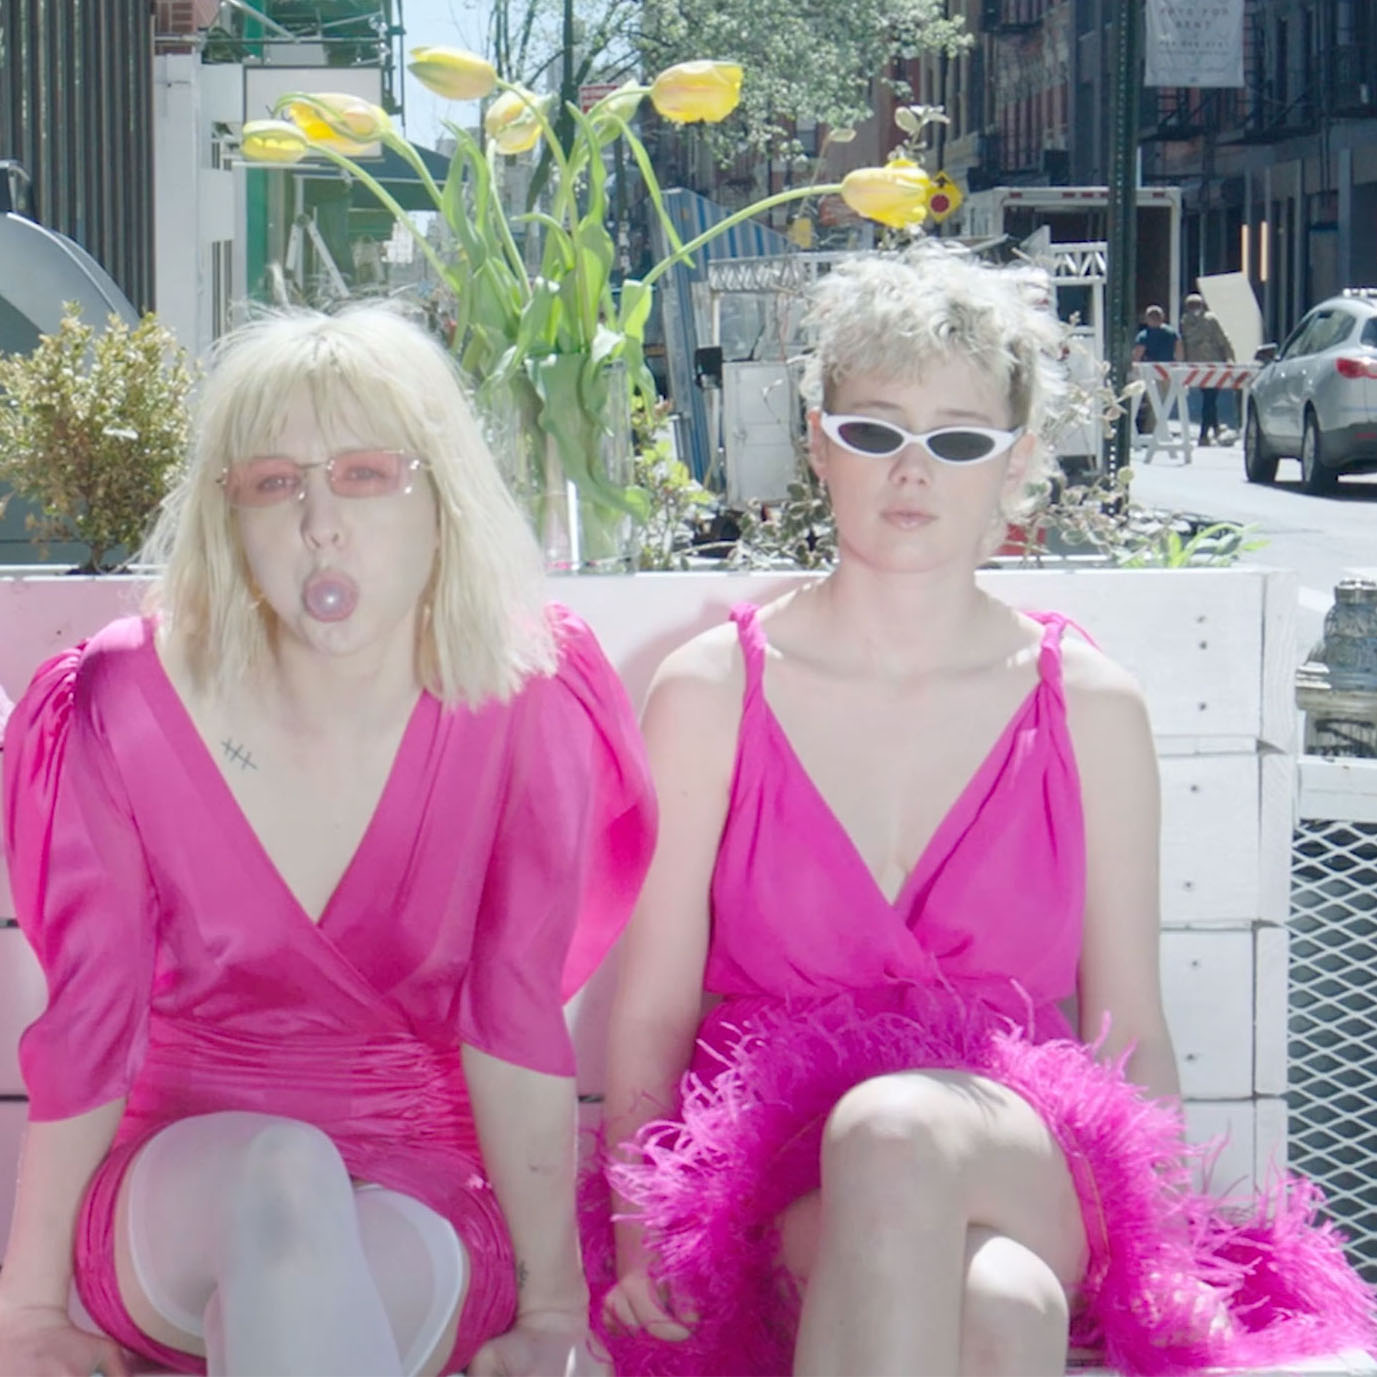 three women on a bench in city in pink dresses